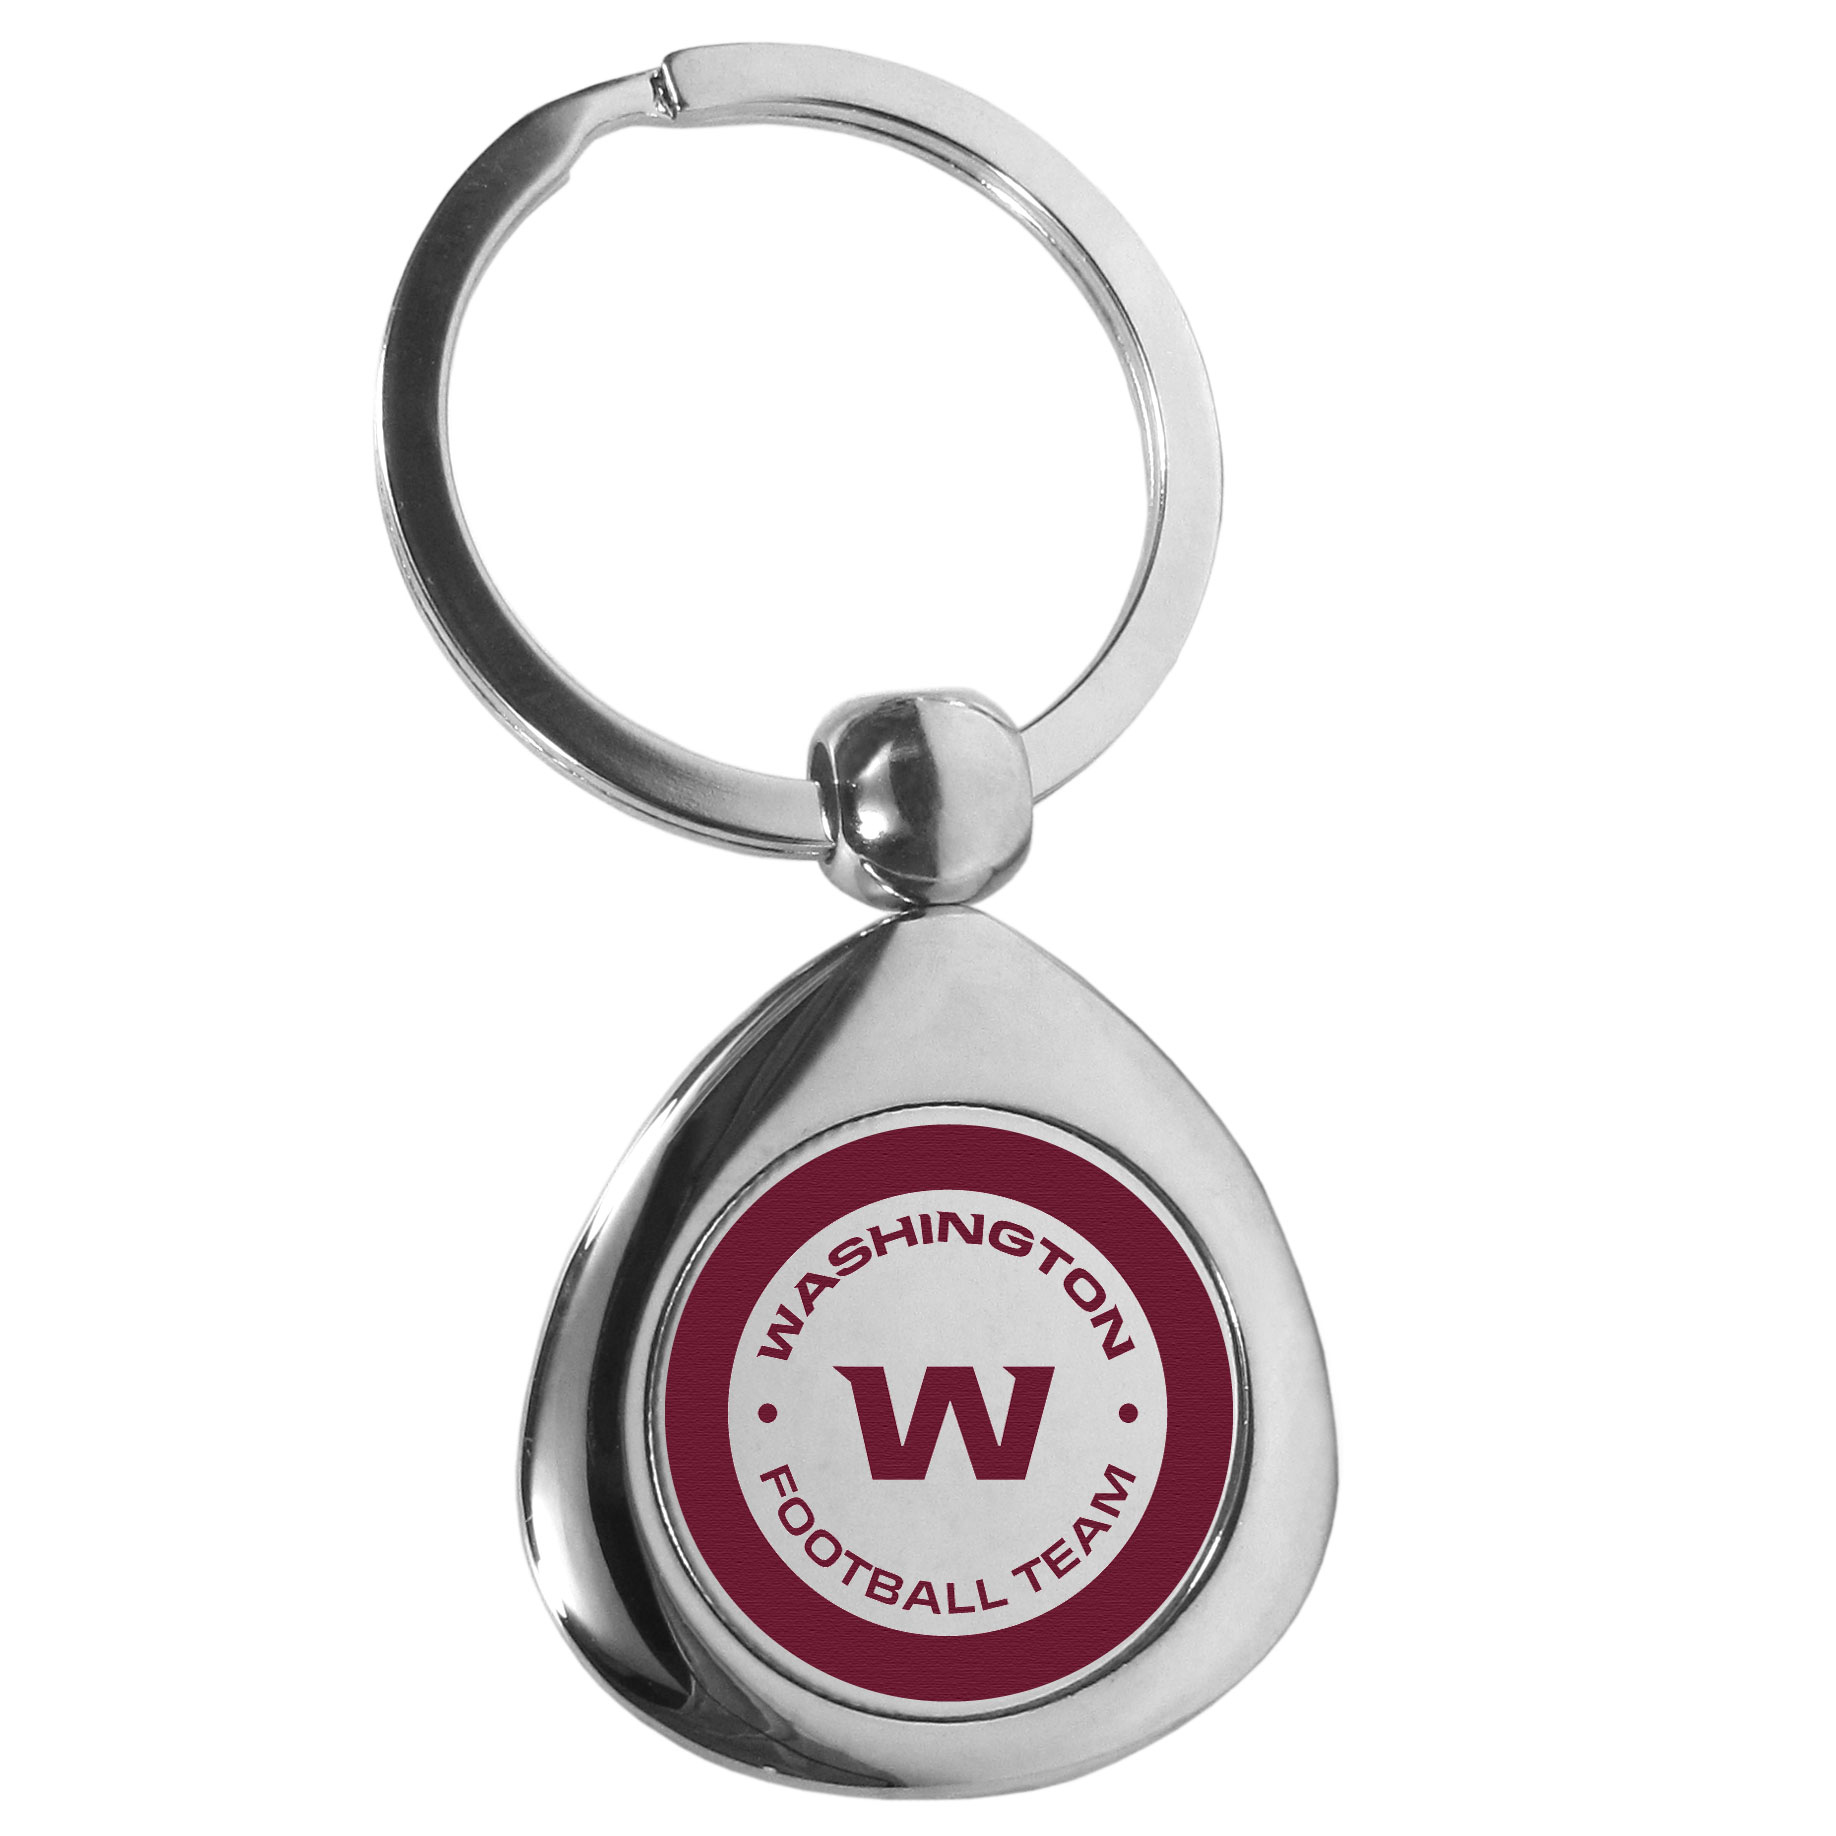 Washington Redskins Round Teardrop Key Chain - Our high polish chrome Washington Redskins round teardrop key chain has a classy look with a sporty twist. The high-quality key fob features the team logo in the team's primary color. The key ring is a flat split ring that is easier to load you home and auto keys onto.